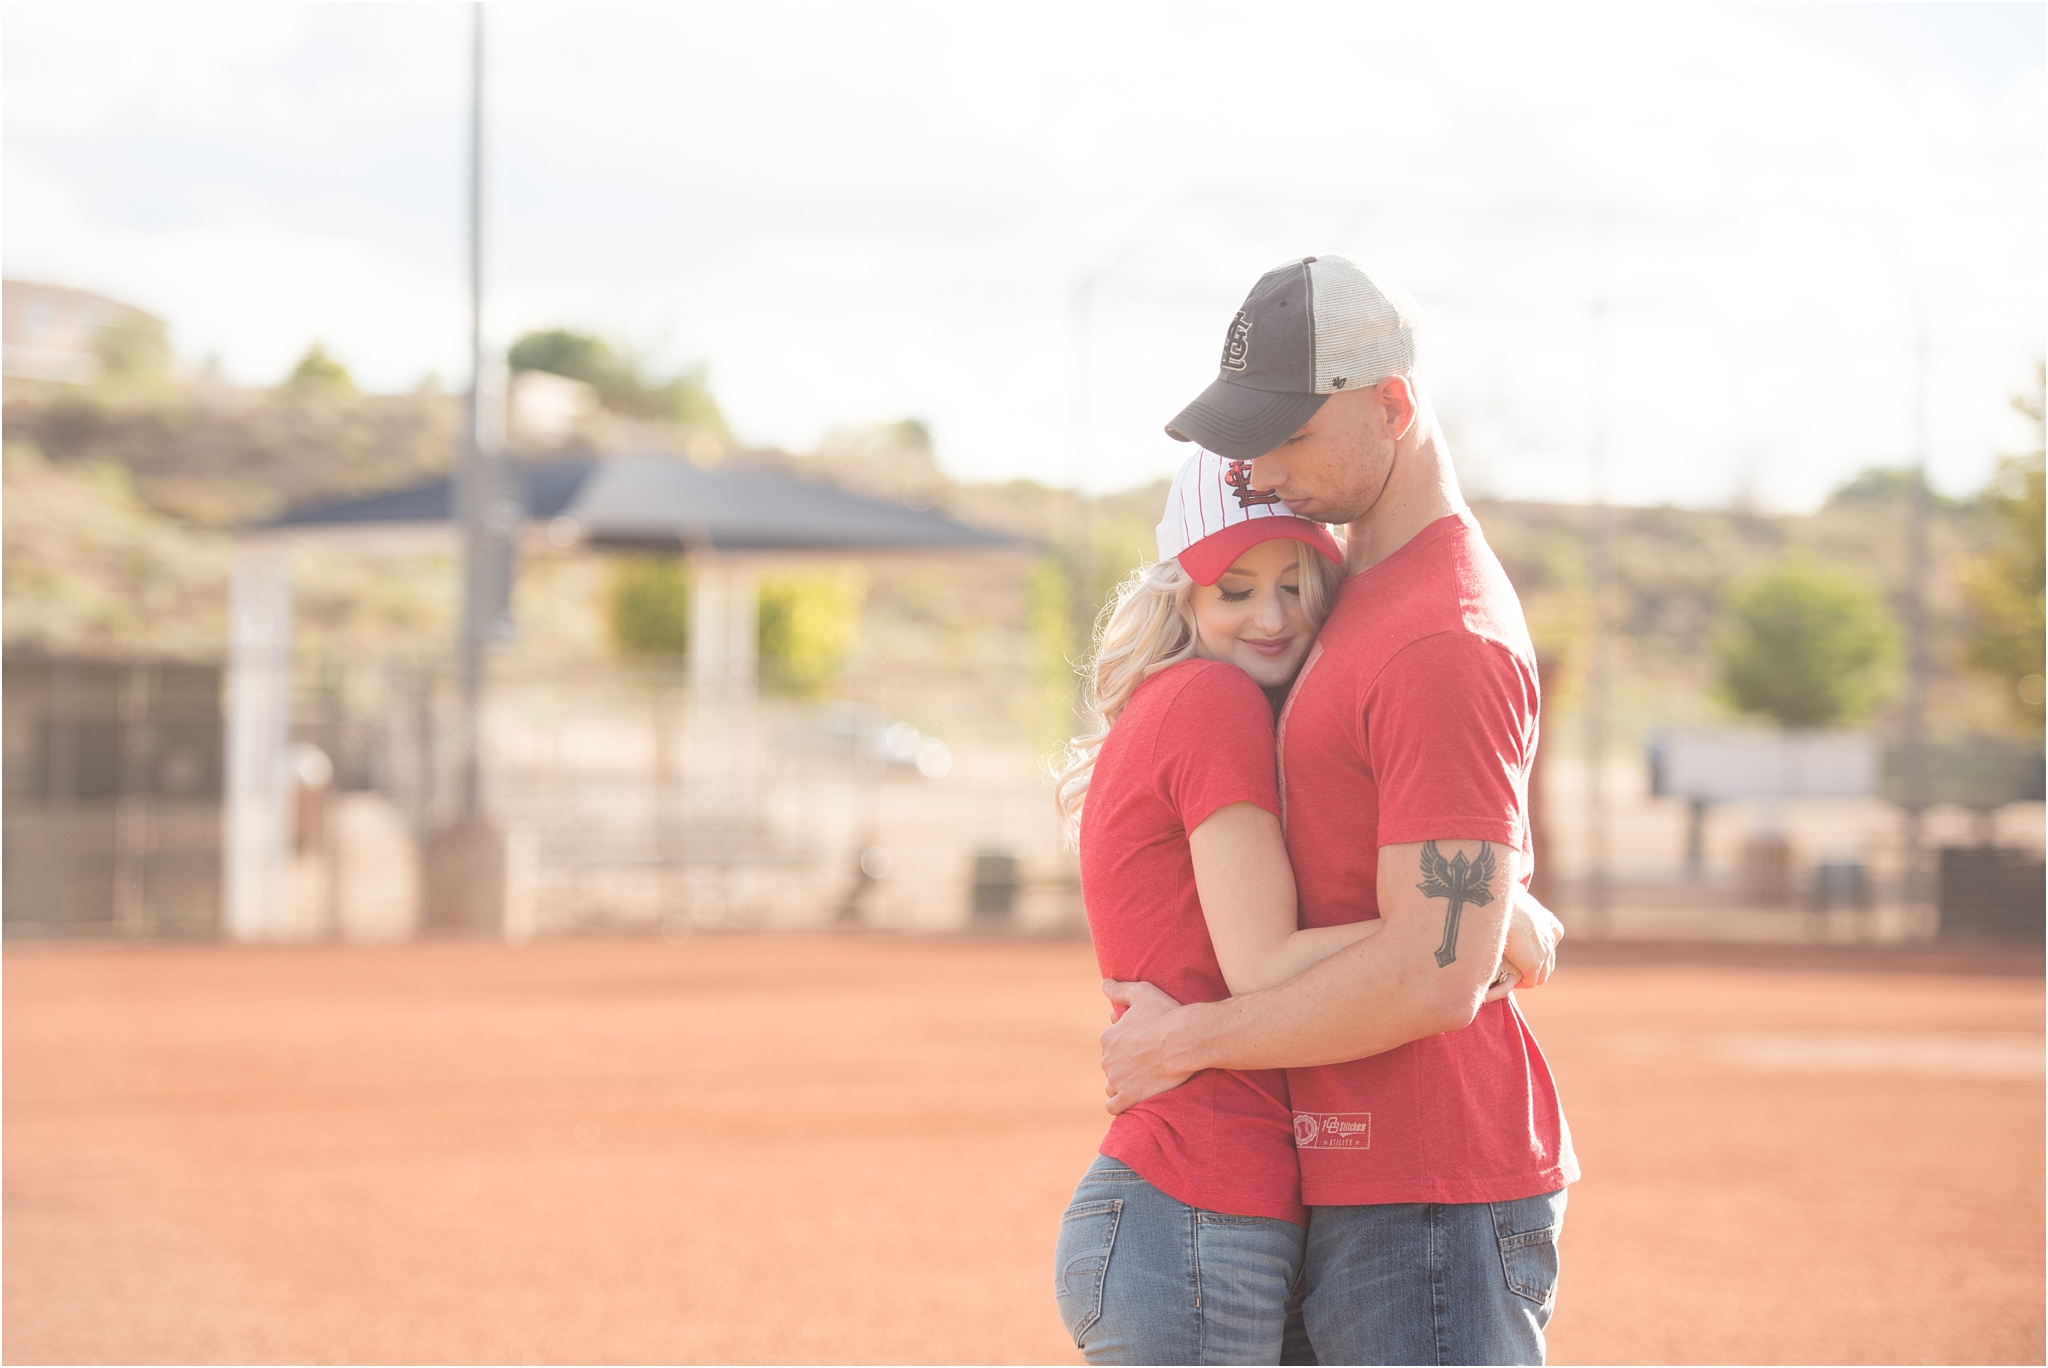 kayla kitts photography - new mexico wedding photographer - albuquerque engagement session_0004.jpg